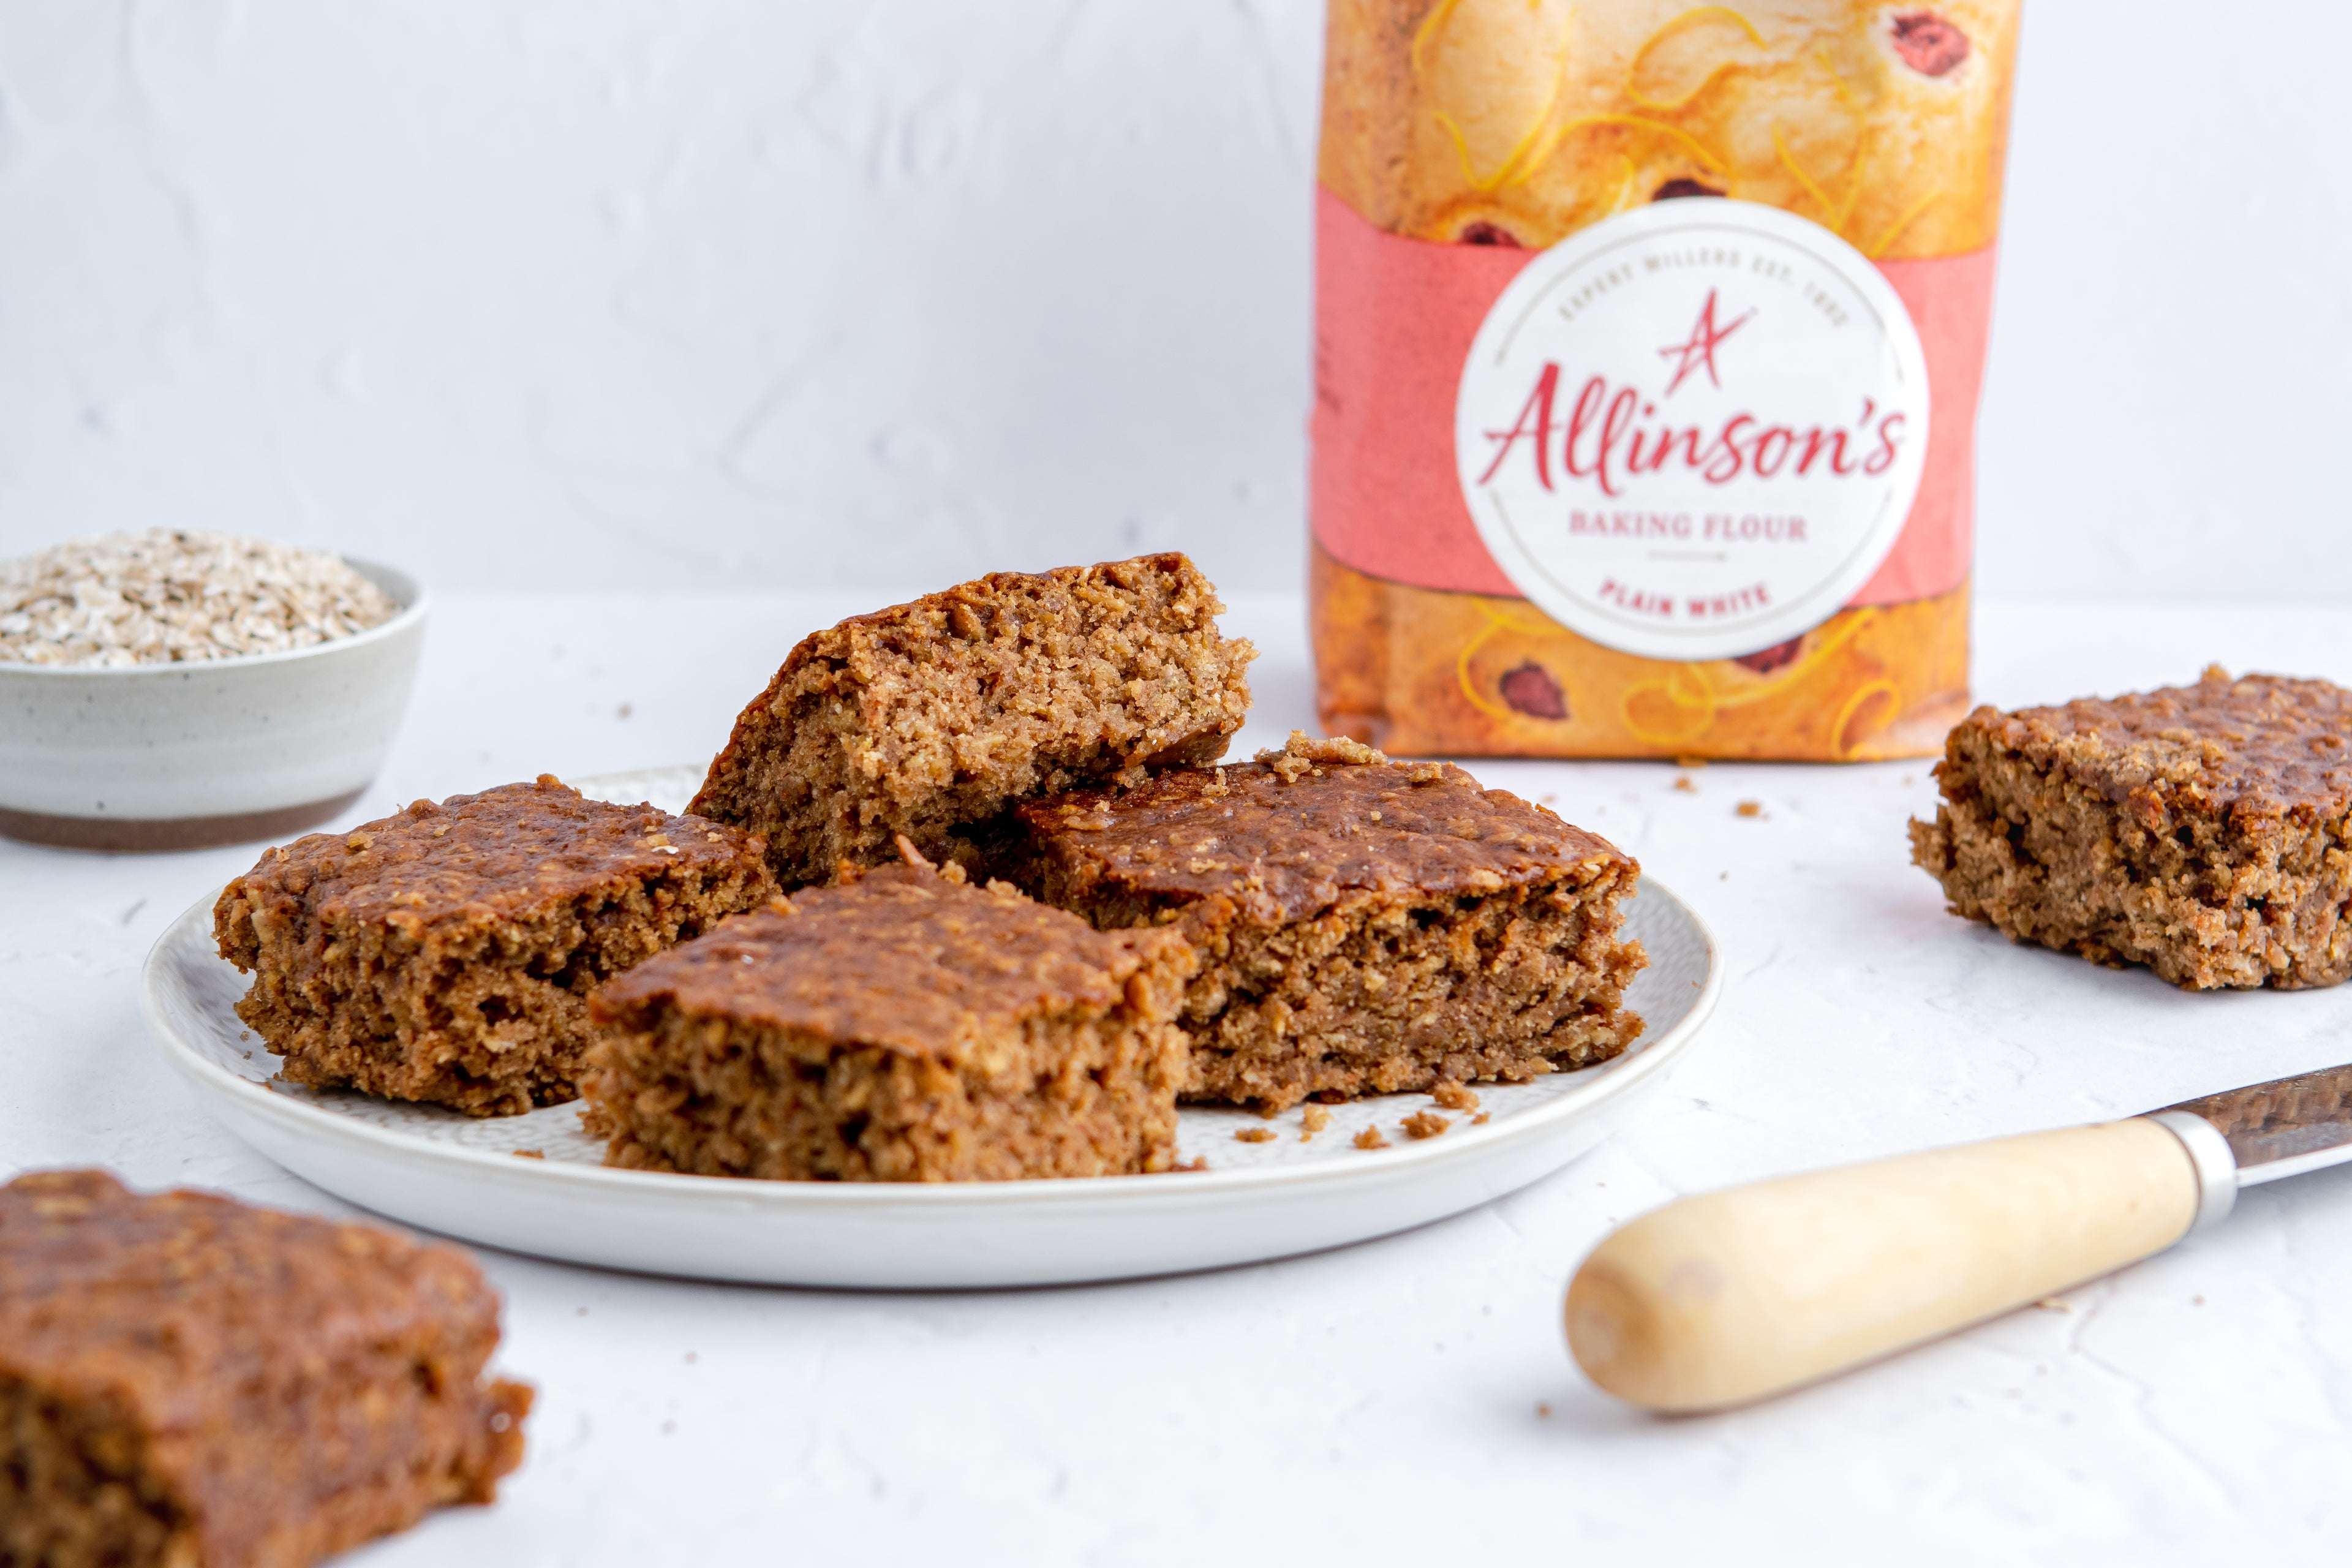 Sticky Yorkshire Parkin slices on a plate with Allinson's Plain White flour in the backgroun